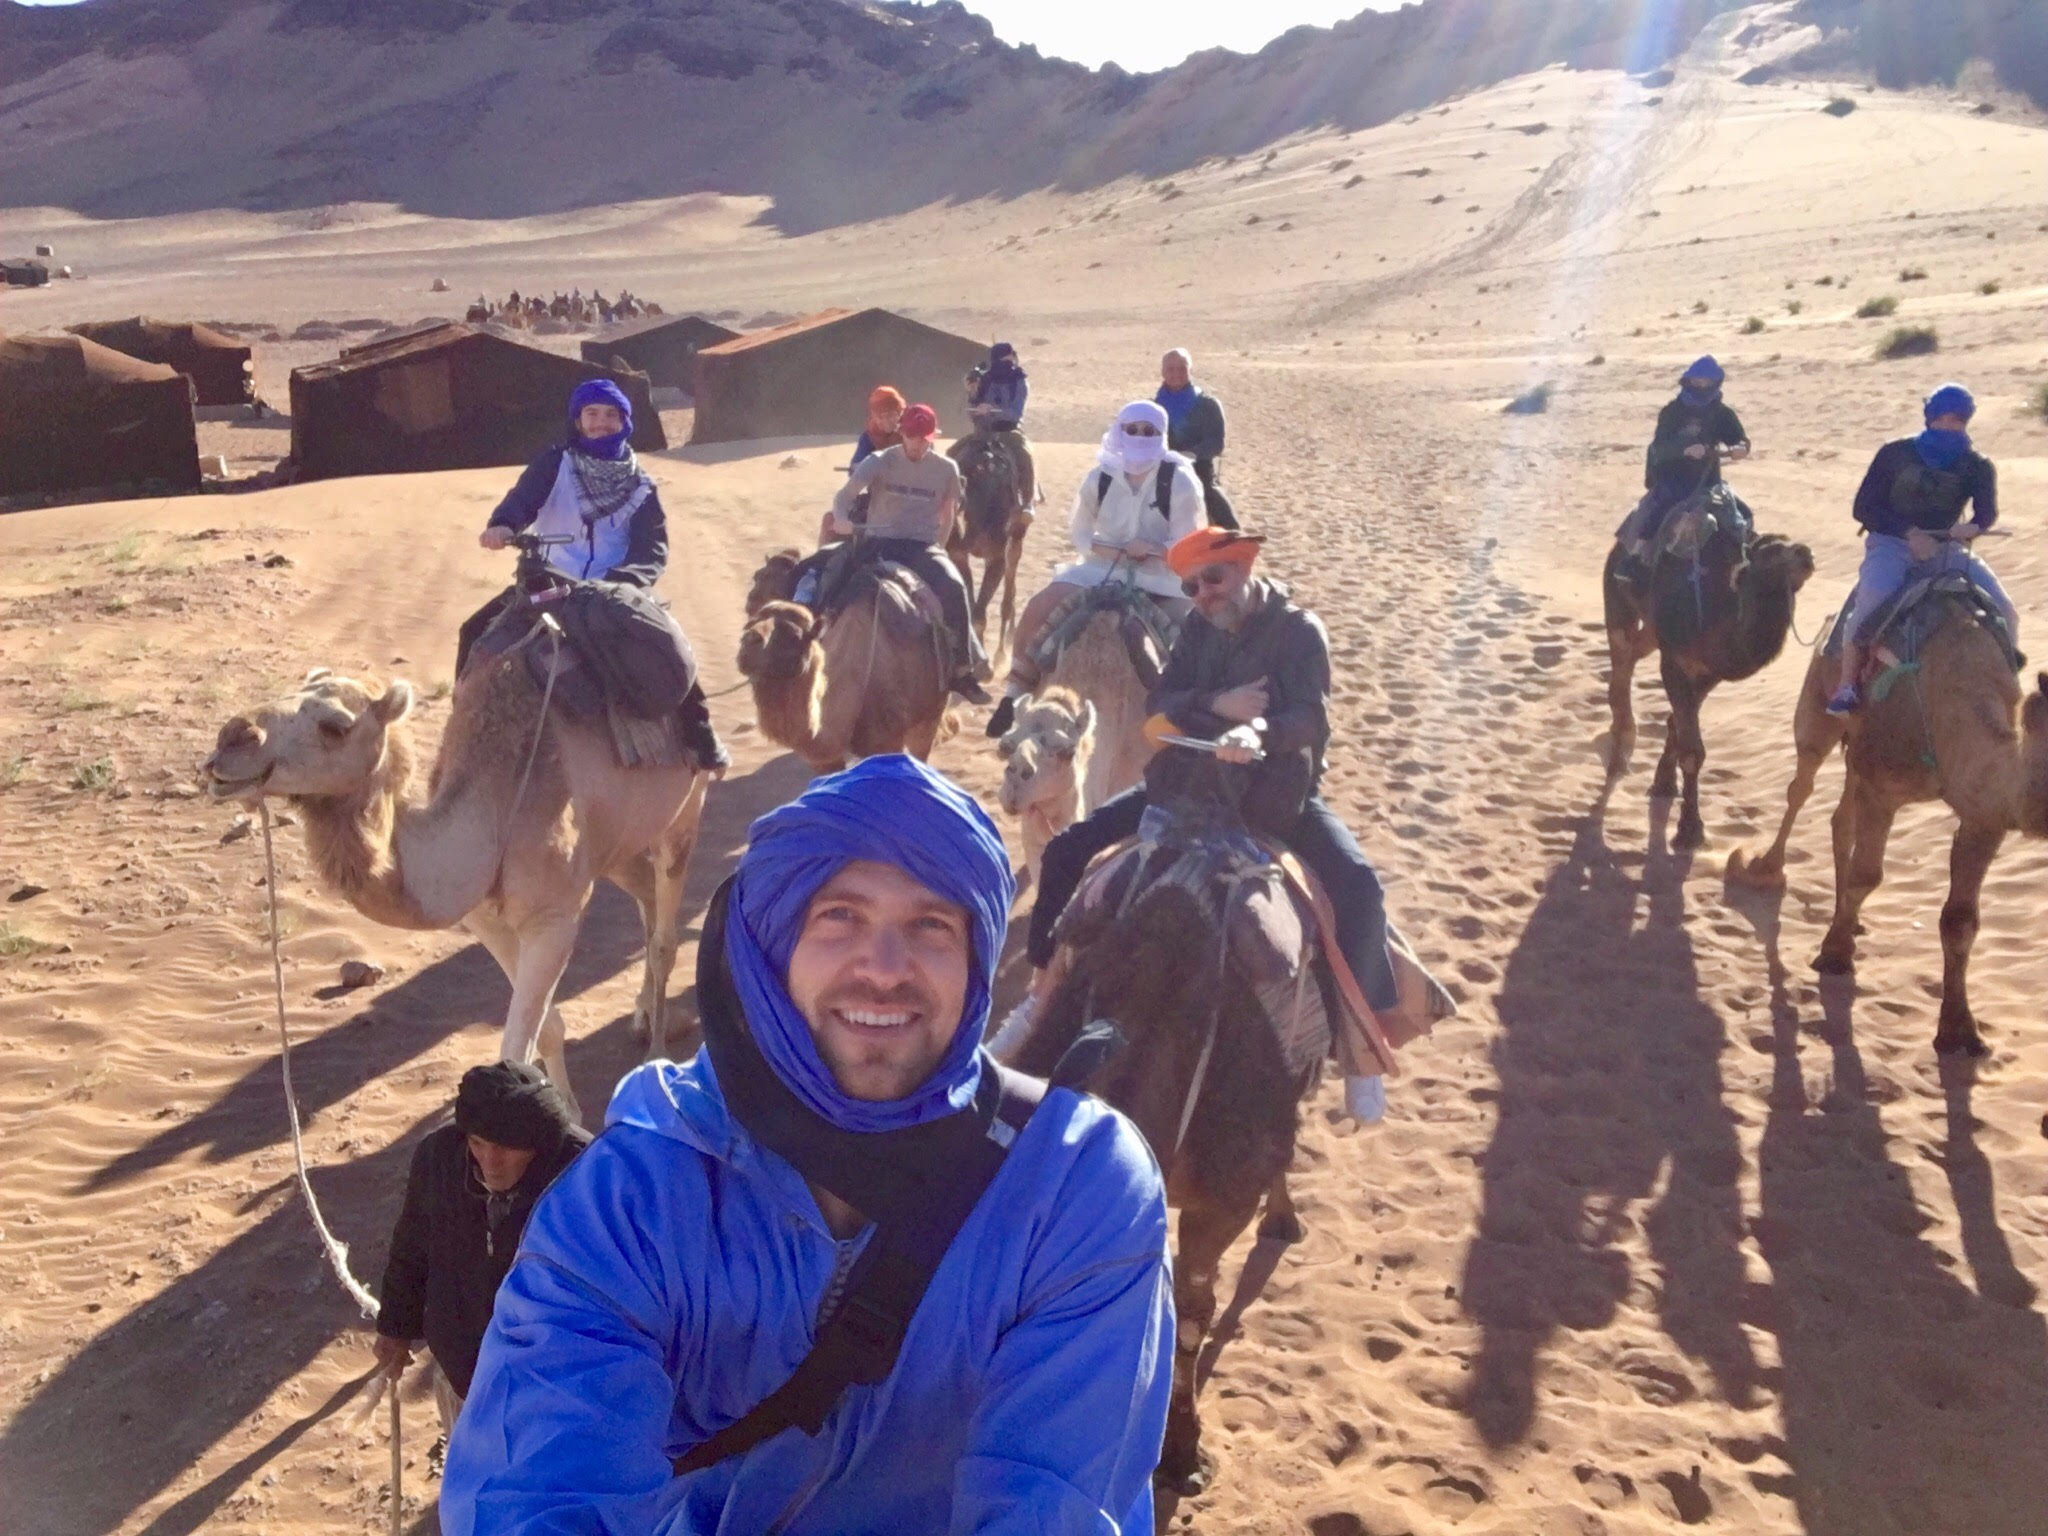 Riding camels through the desert